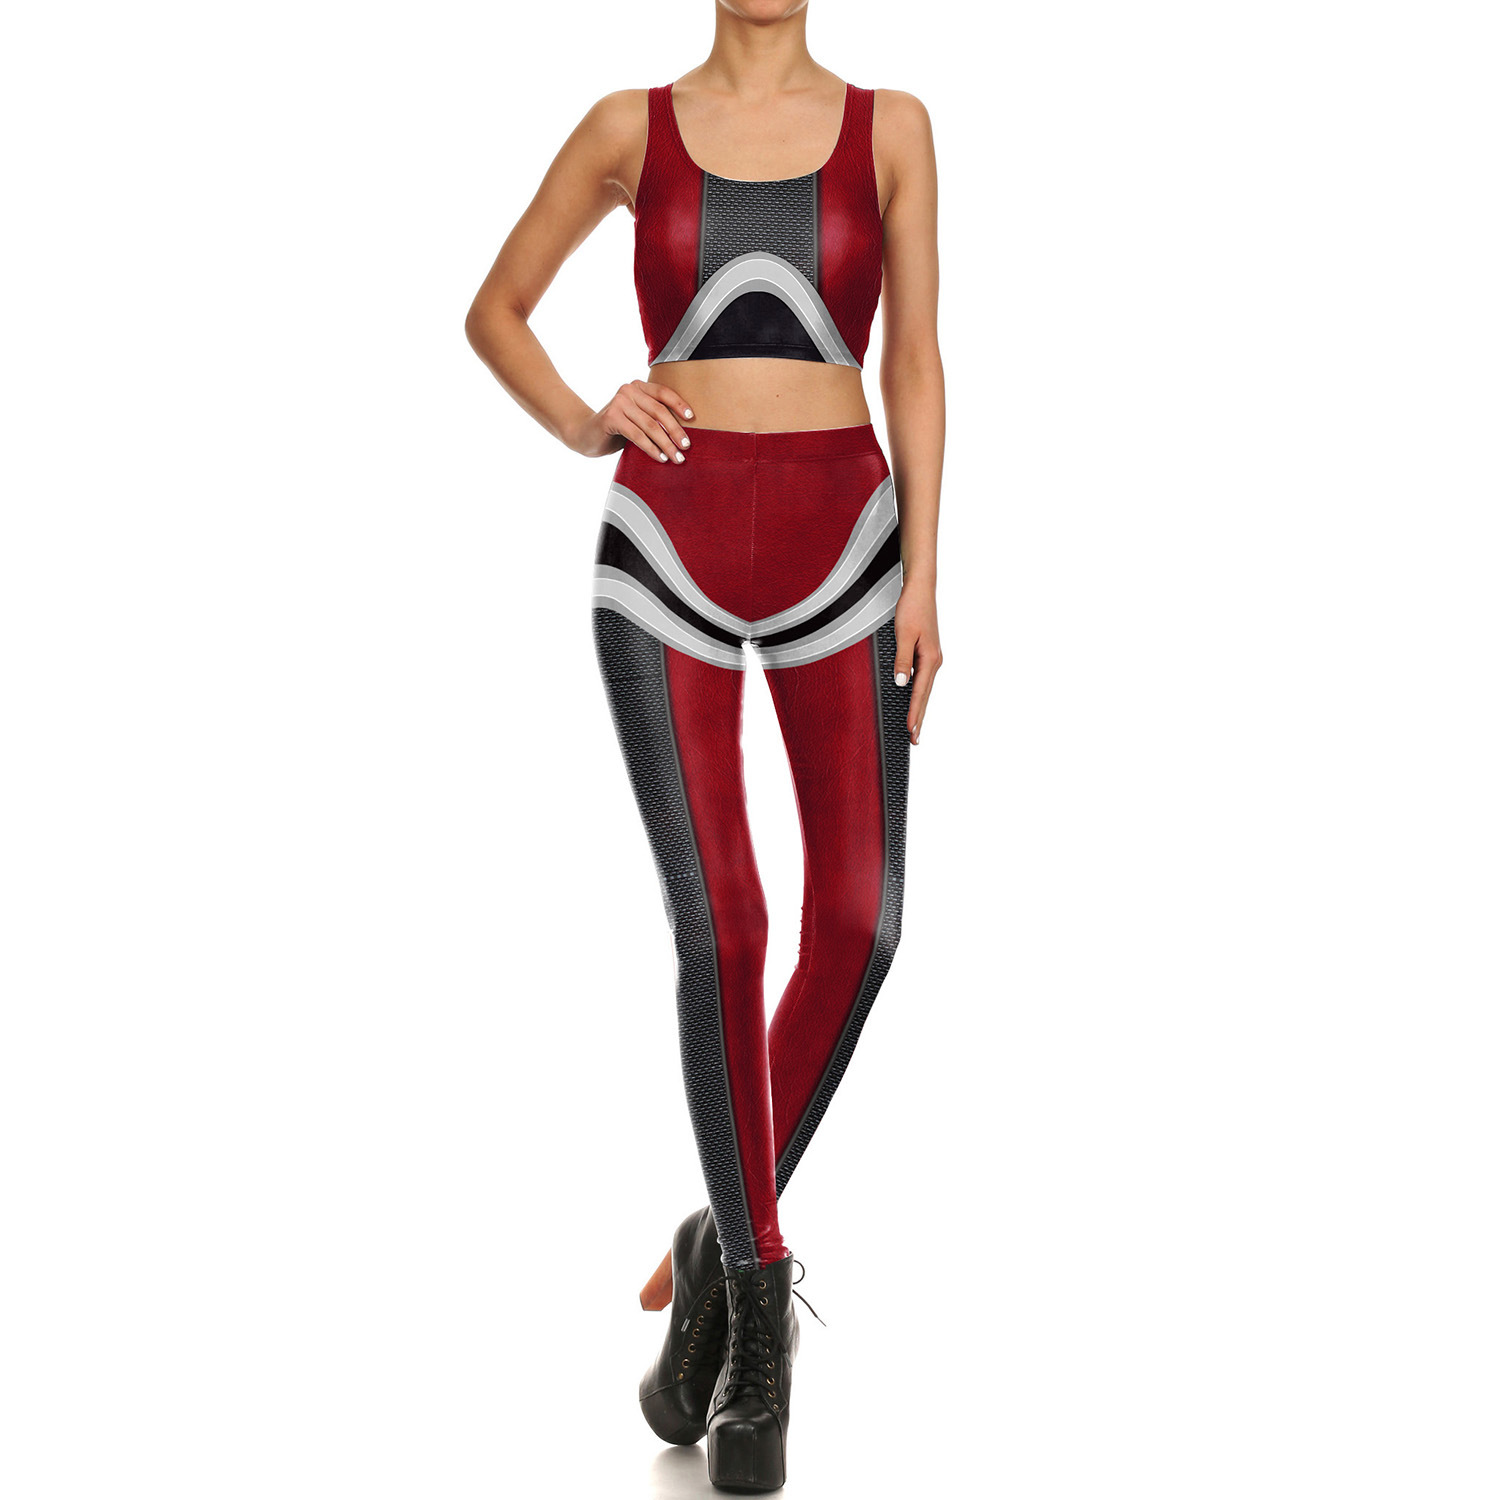 2018 Amazon Hot Selling Europe And America Mech Series Vest Leggings WOMEN'S Suit